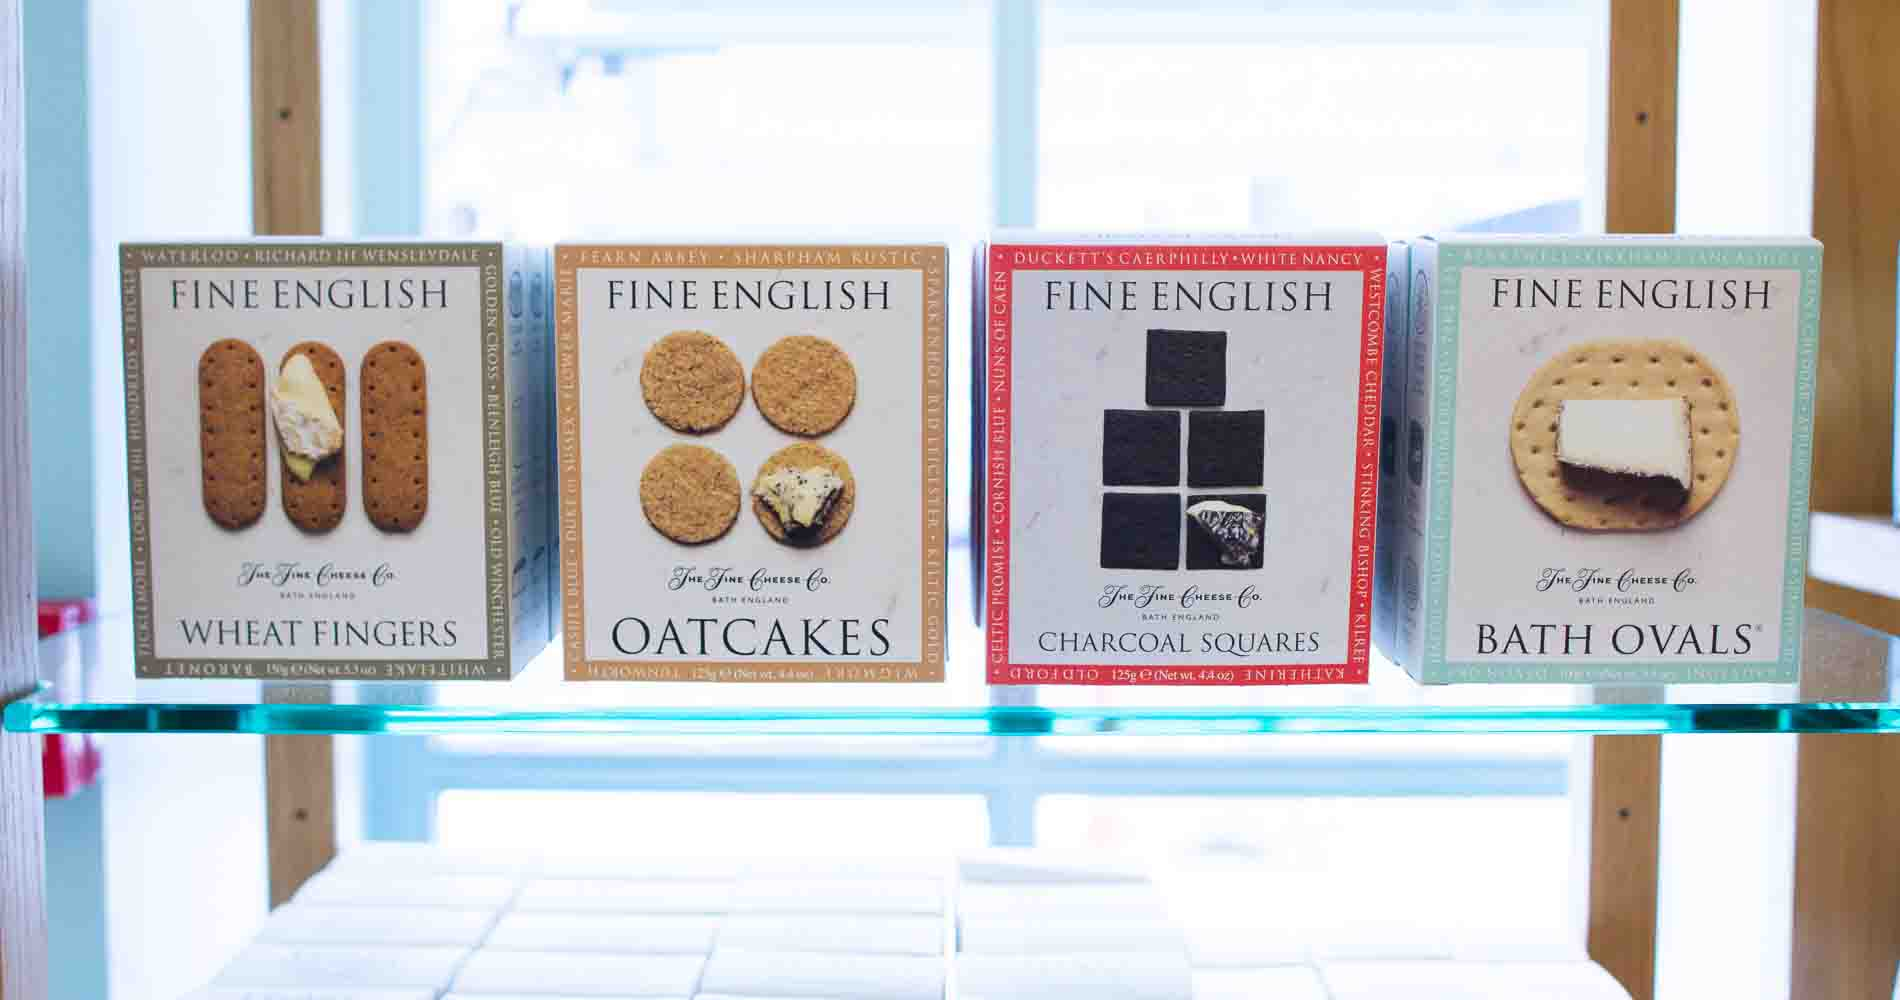 The Fine Cheese Co Biscuits And Crackers